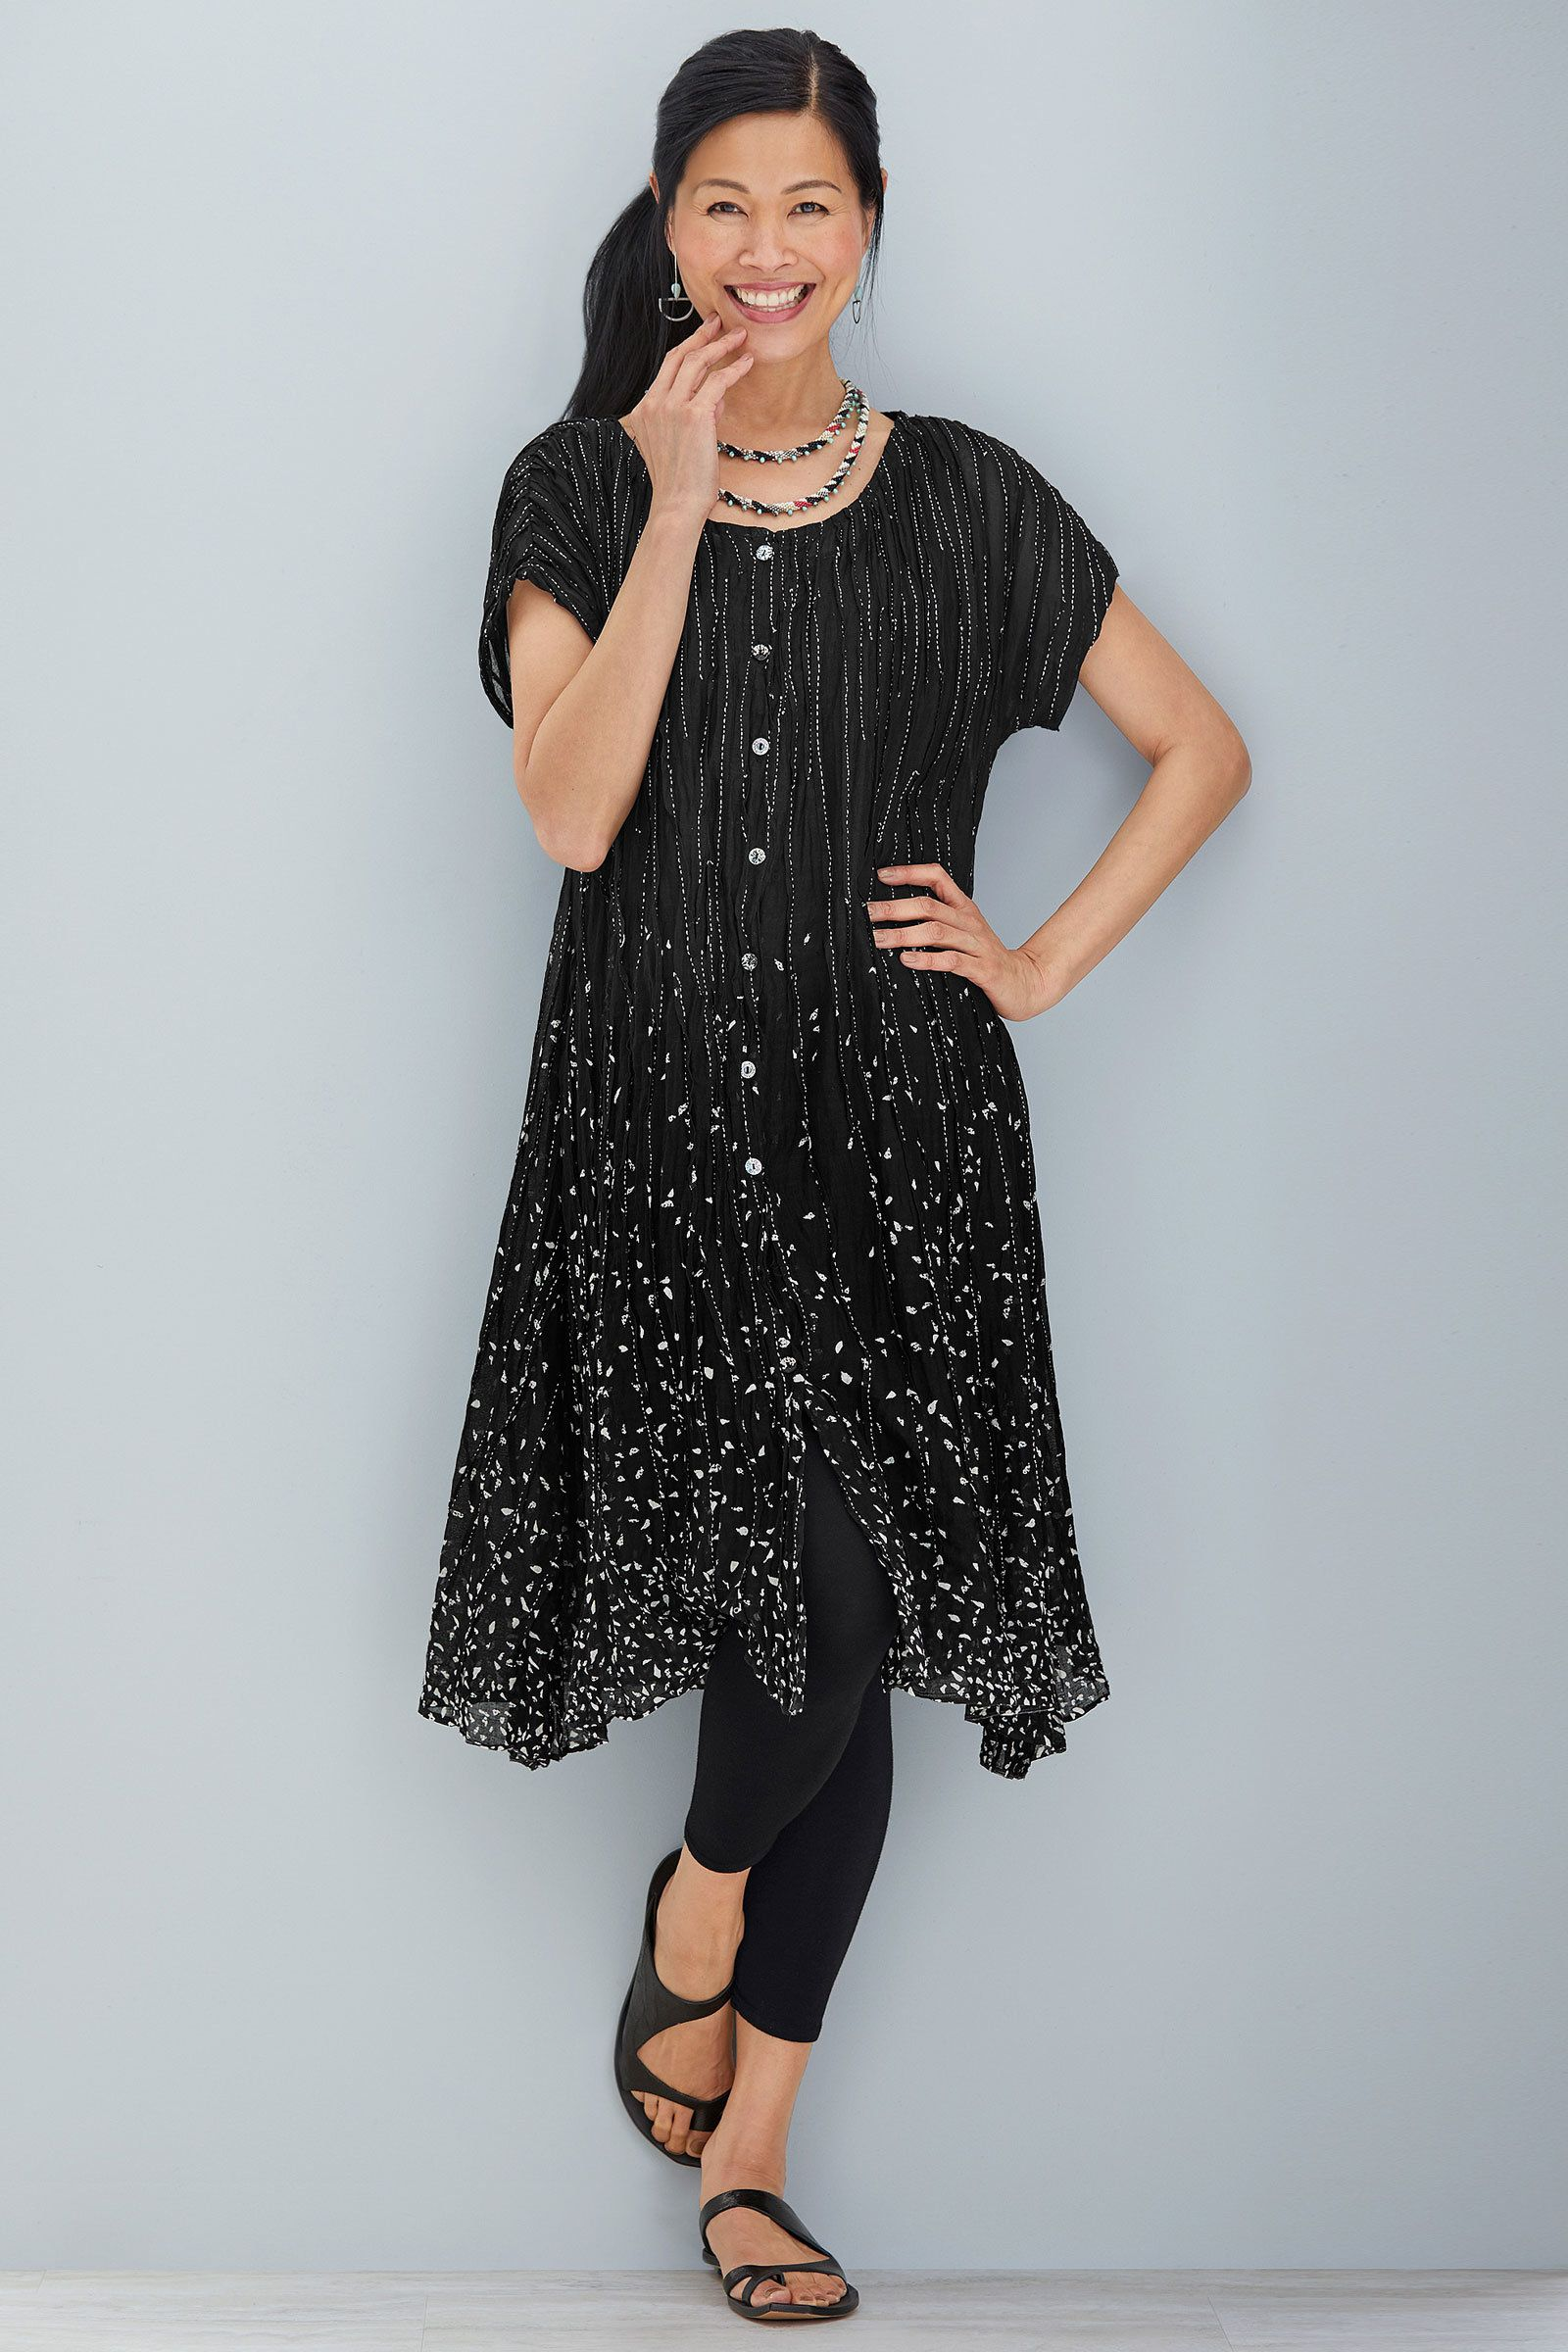 Kantuck Dress by Mieko Mintz (Woven Dress | Ethereal, Bodies and Clothes